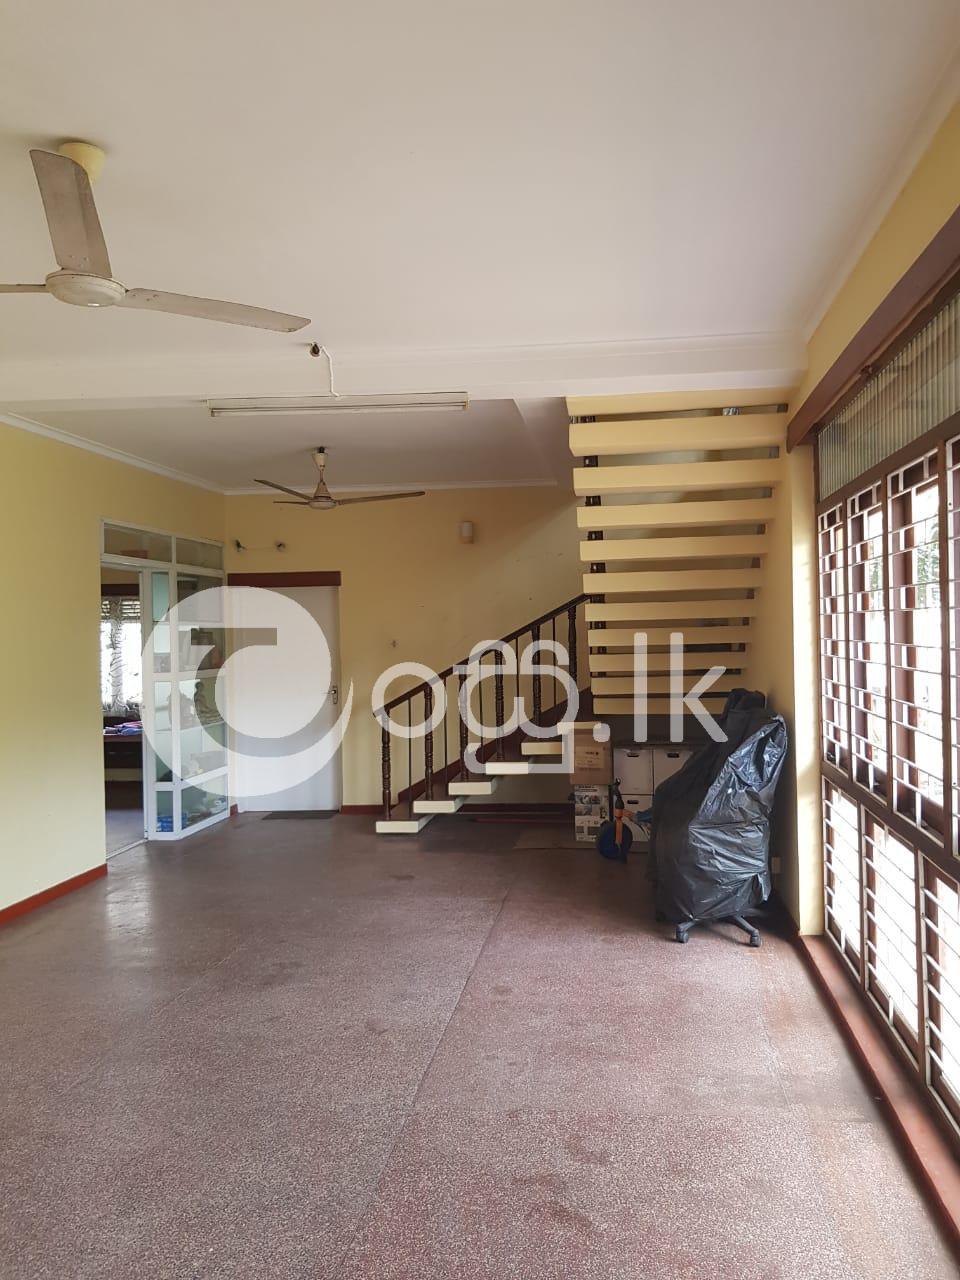 Commercial Land with Building for Sale Commercial Property in Boralesgamuwa